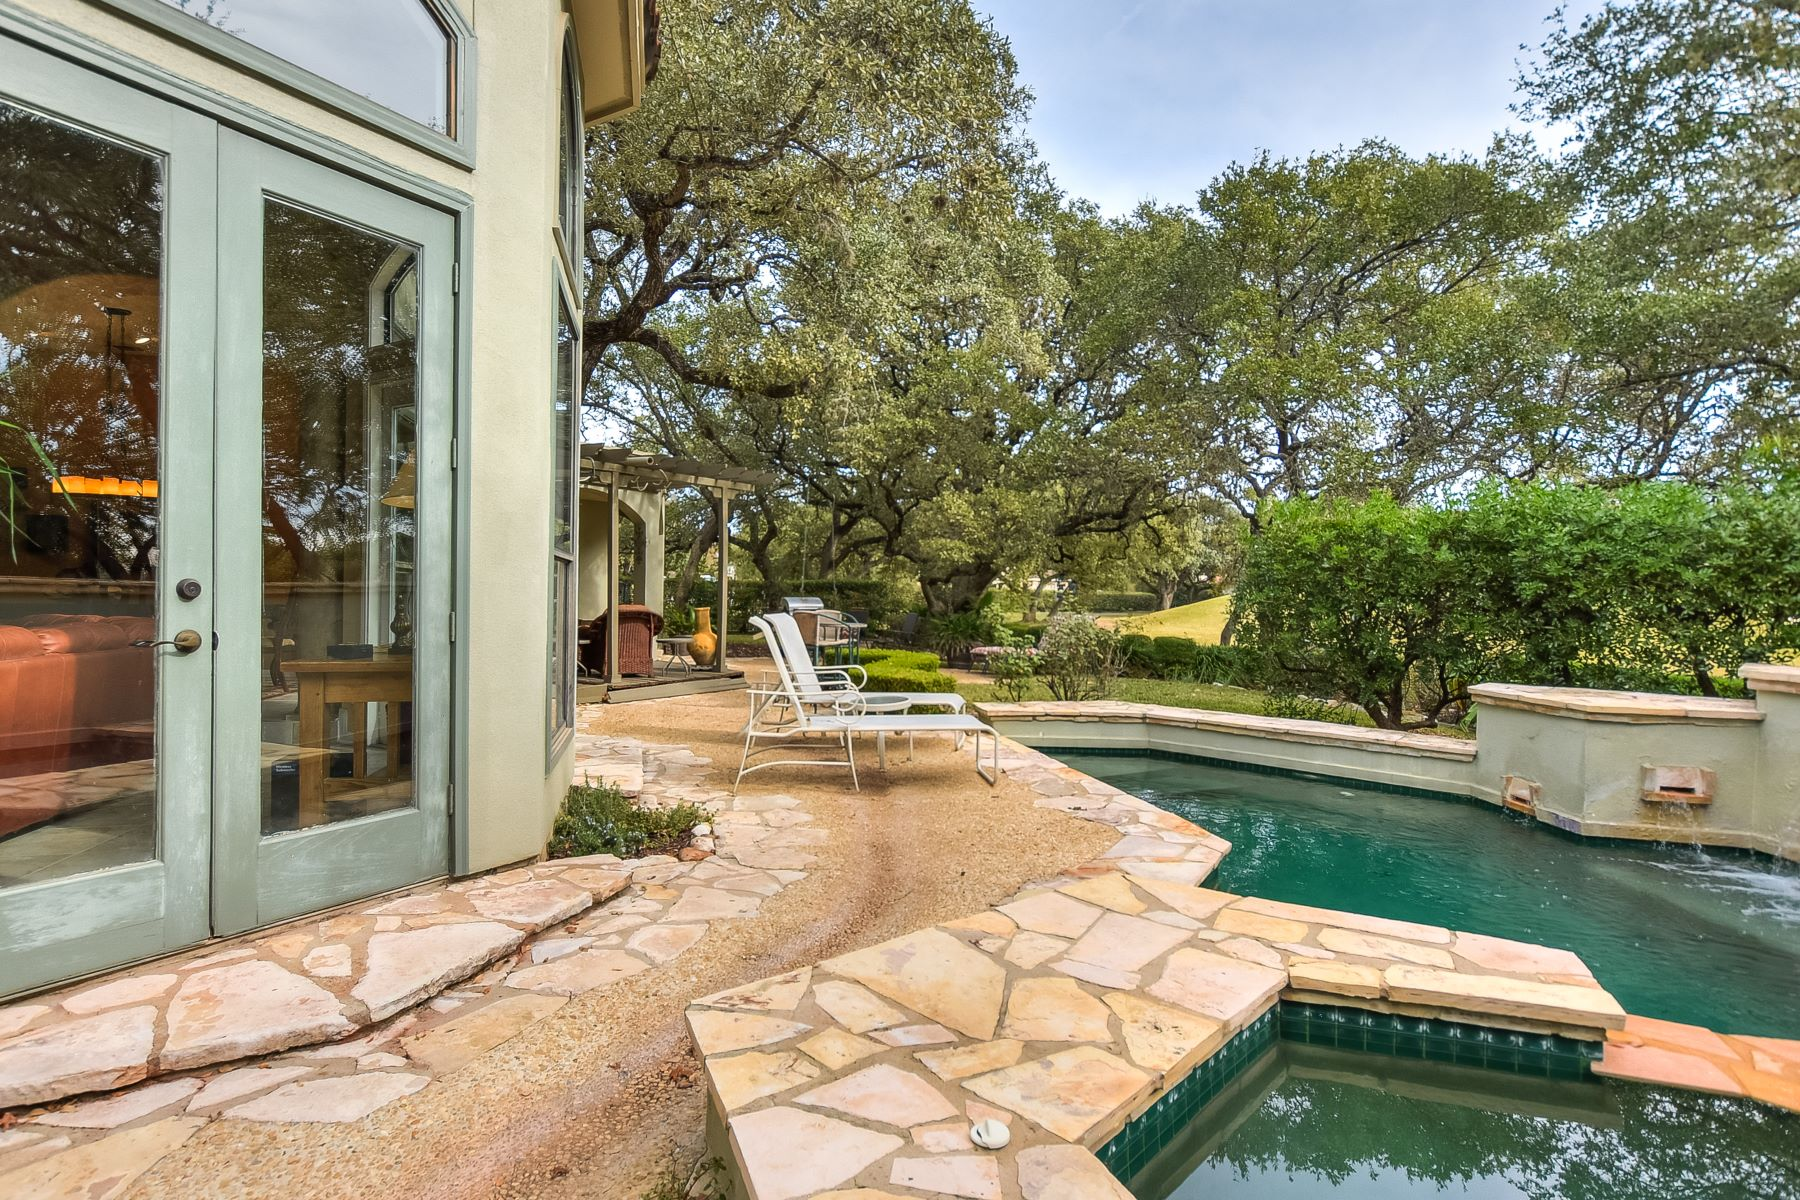 Additional photo for property listing at Stunning Sonterra Golf Course Home 19158 Kristen Way San Antonio, Texas 78258 United States